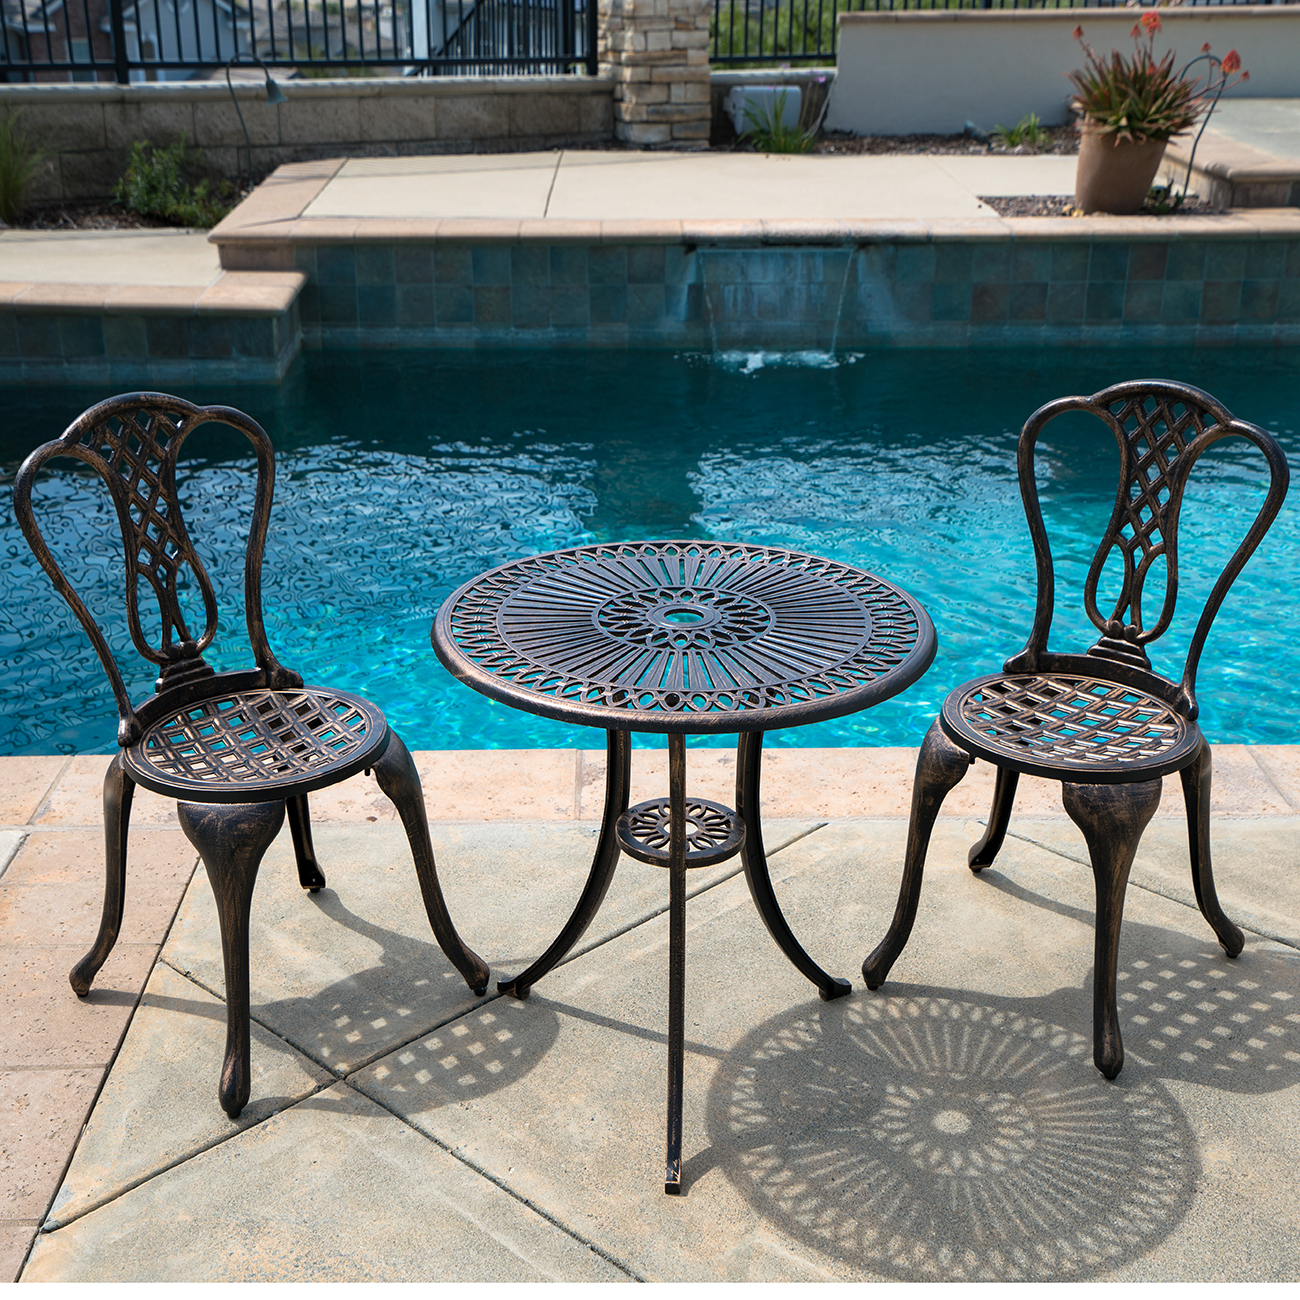 patio bistro table and chairs cristo cross back chair white 3pcs outdoor cast aluminum